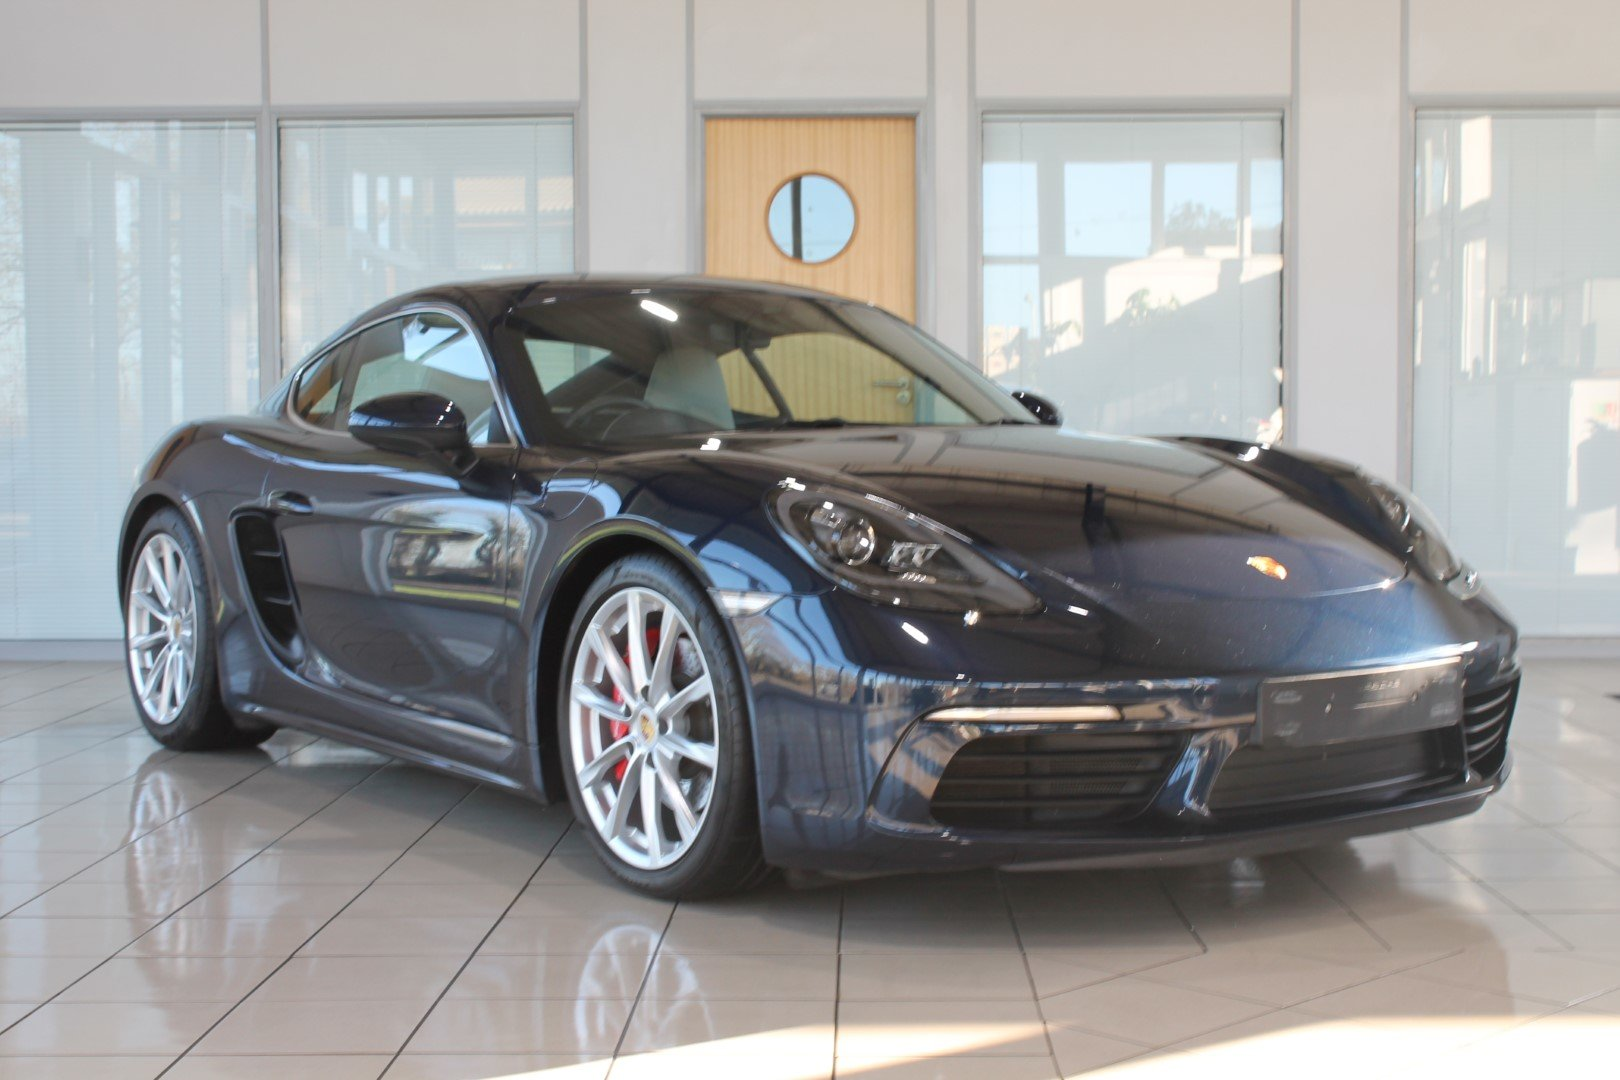 2016 Porsche Cayman (718) 2.5 S PDK - NOW SOLD - MORE REQUIRED For Sale (picture 4 of 12)